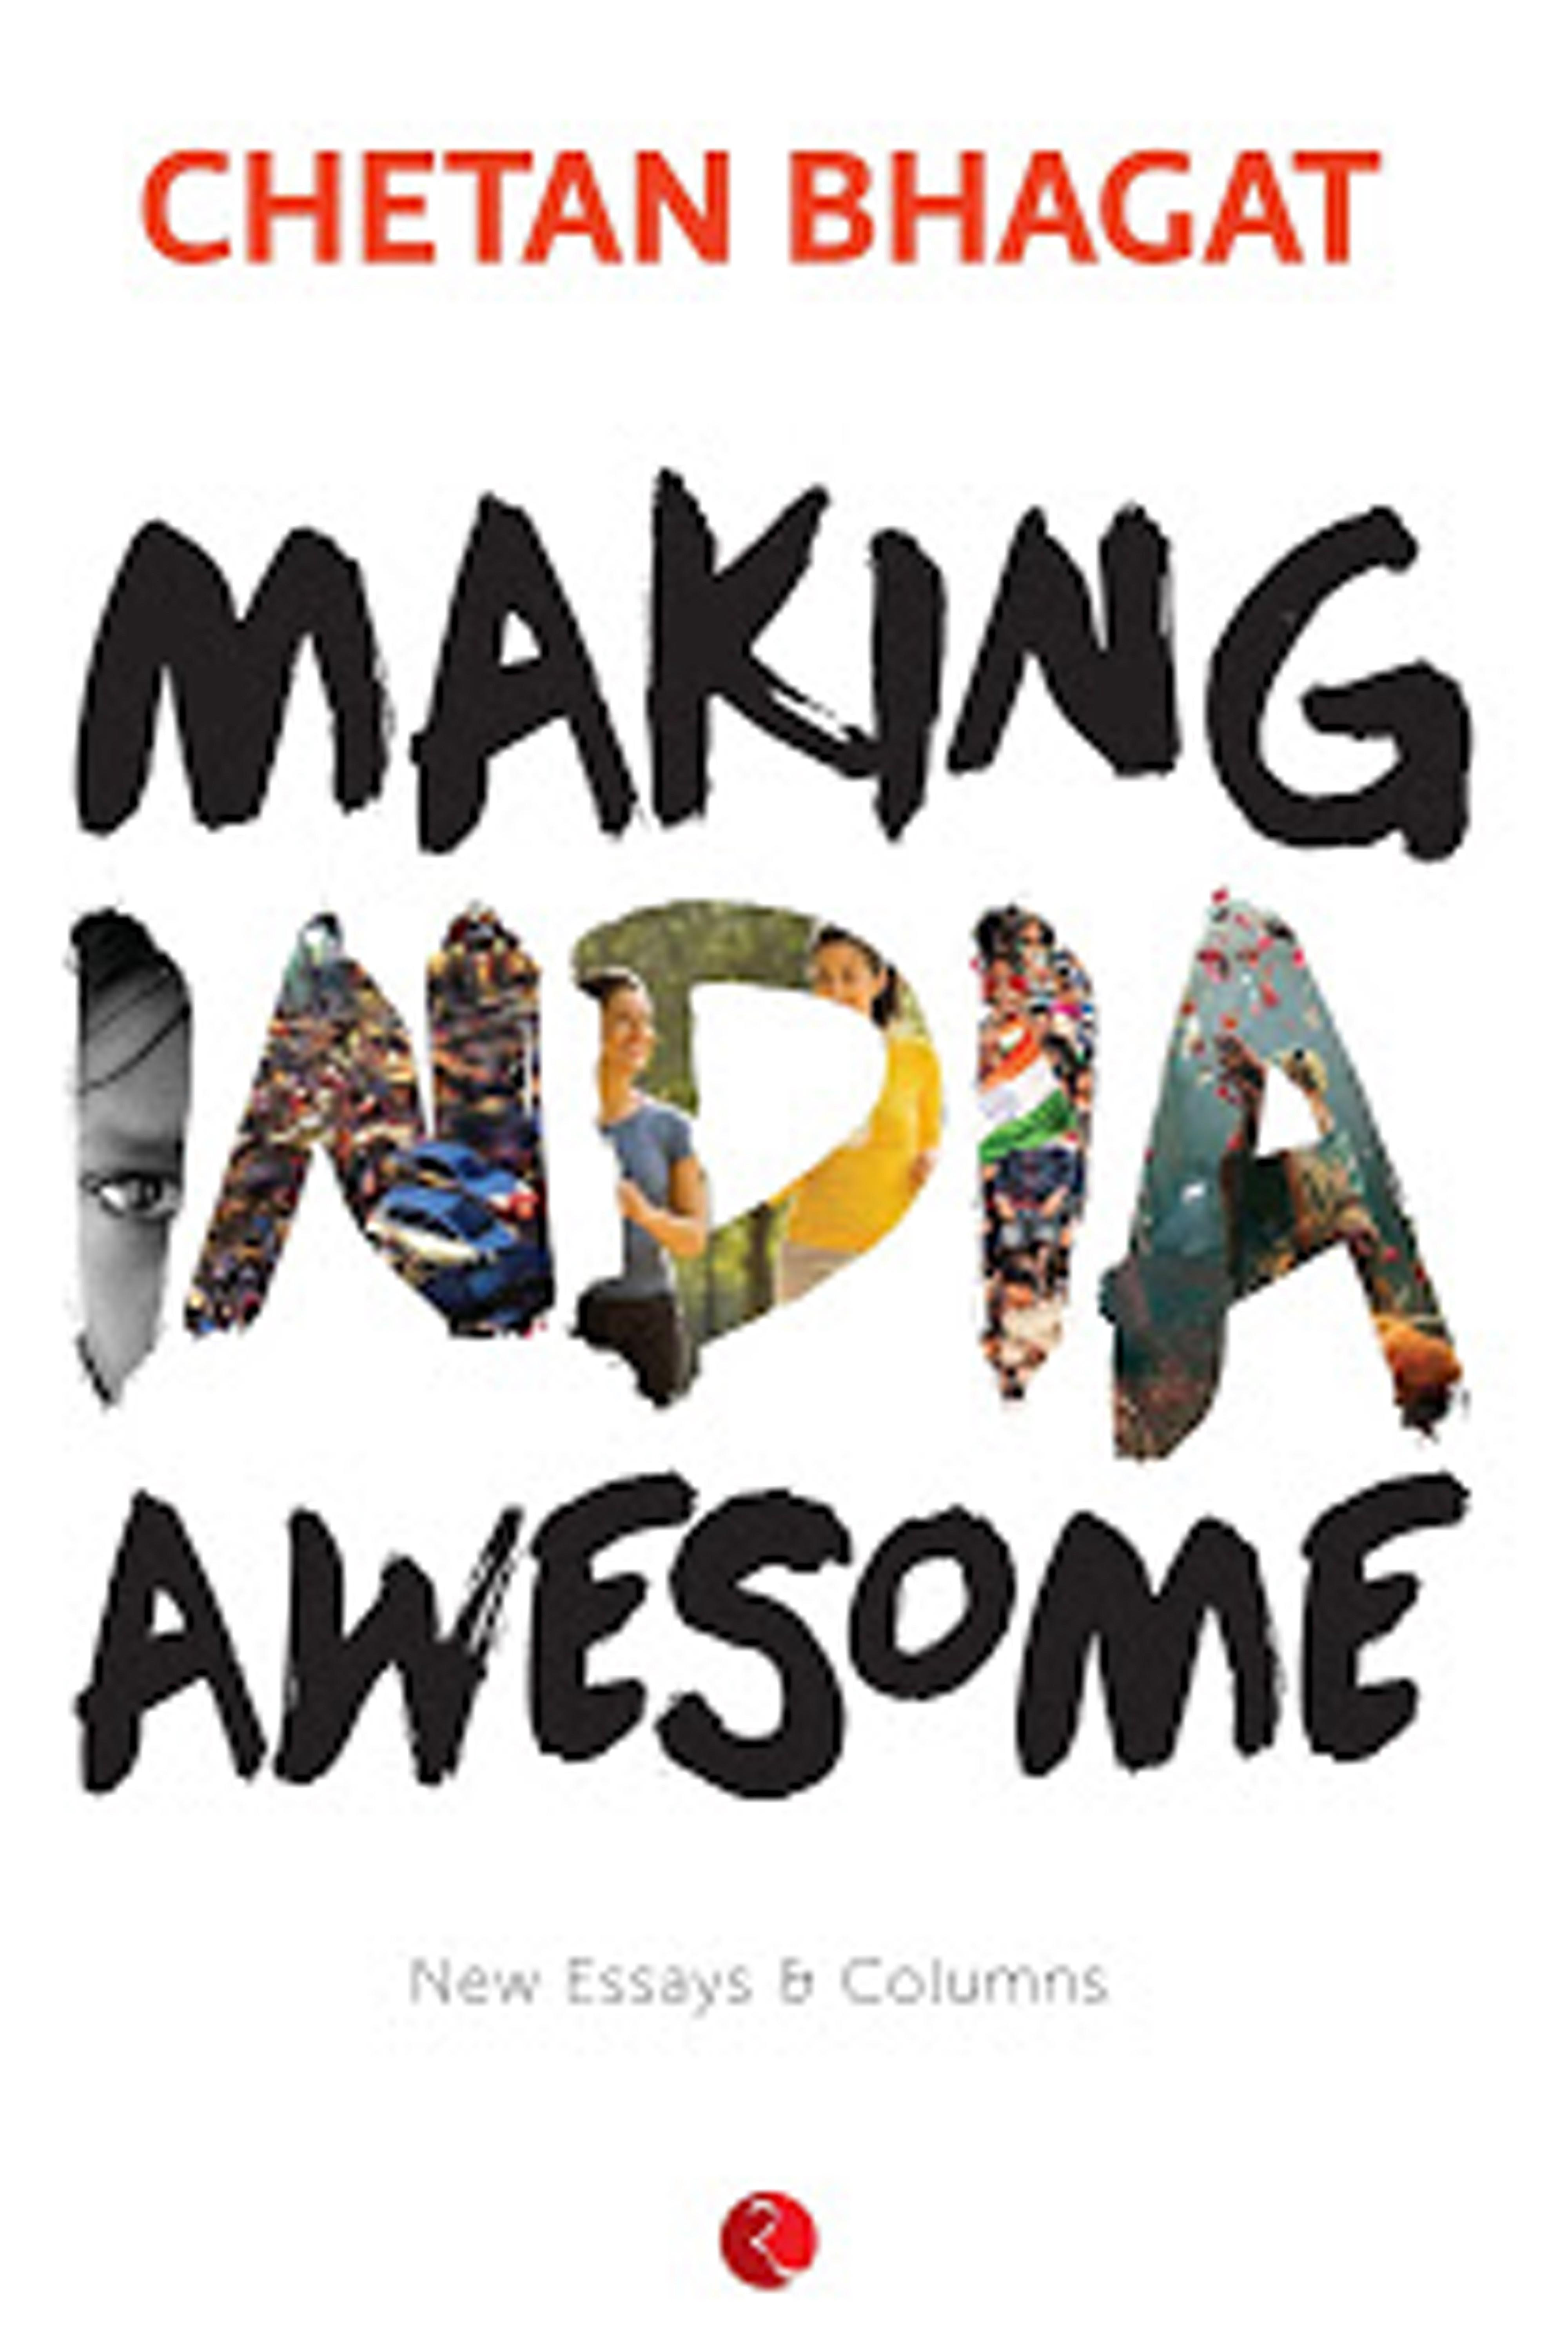 Making India Awesome: New Essays and Columns price in India.